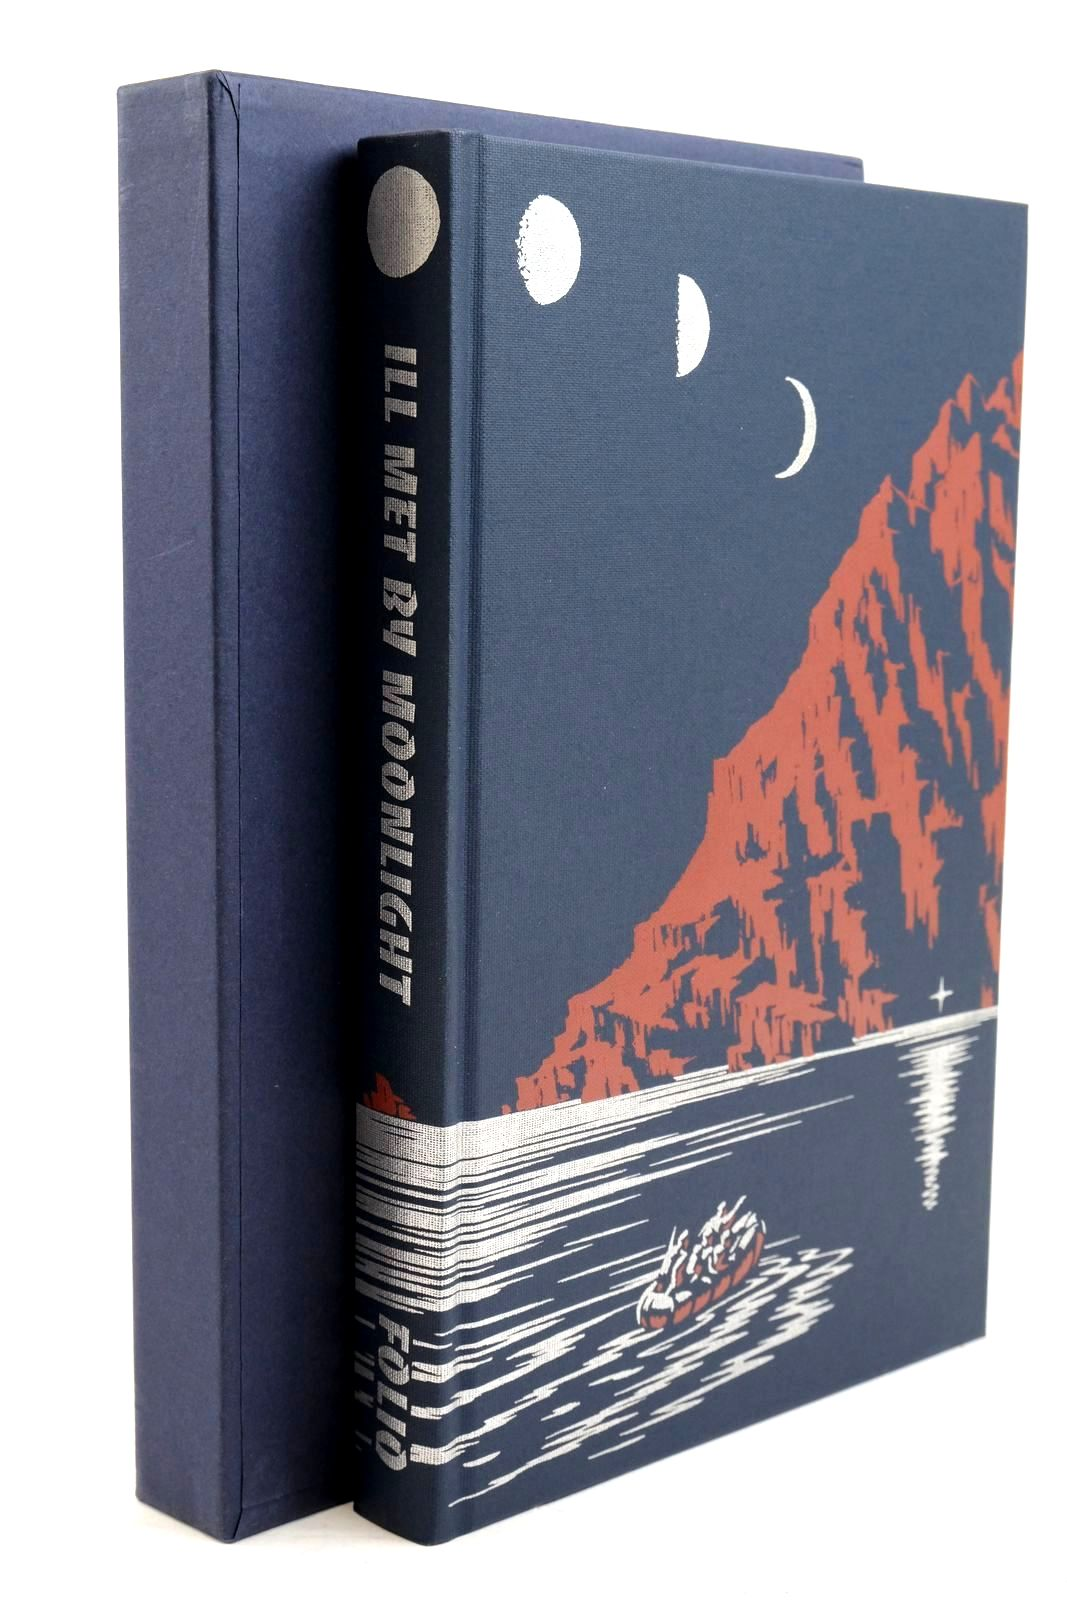 Photo of ILL MET BY MOONLIGHT written by Moss, W. Stanley Foot, M.R.D. Moncreiffe, Iain Fermor, Patrick Leigh published by Folio Society (STOCK CODE: 1320778)  for sale by Stella & Rose's Books